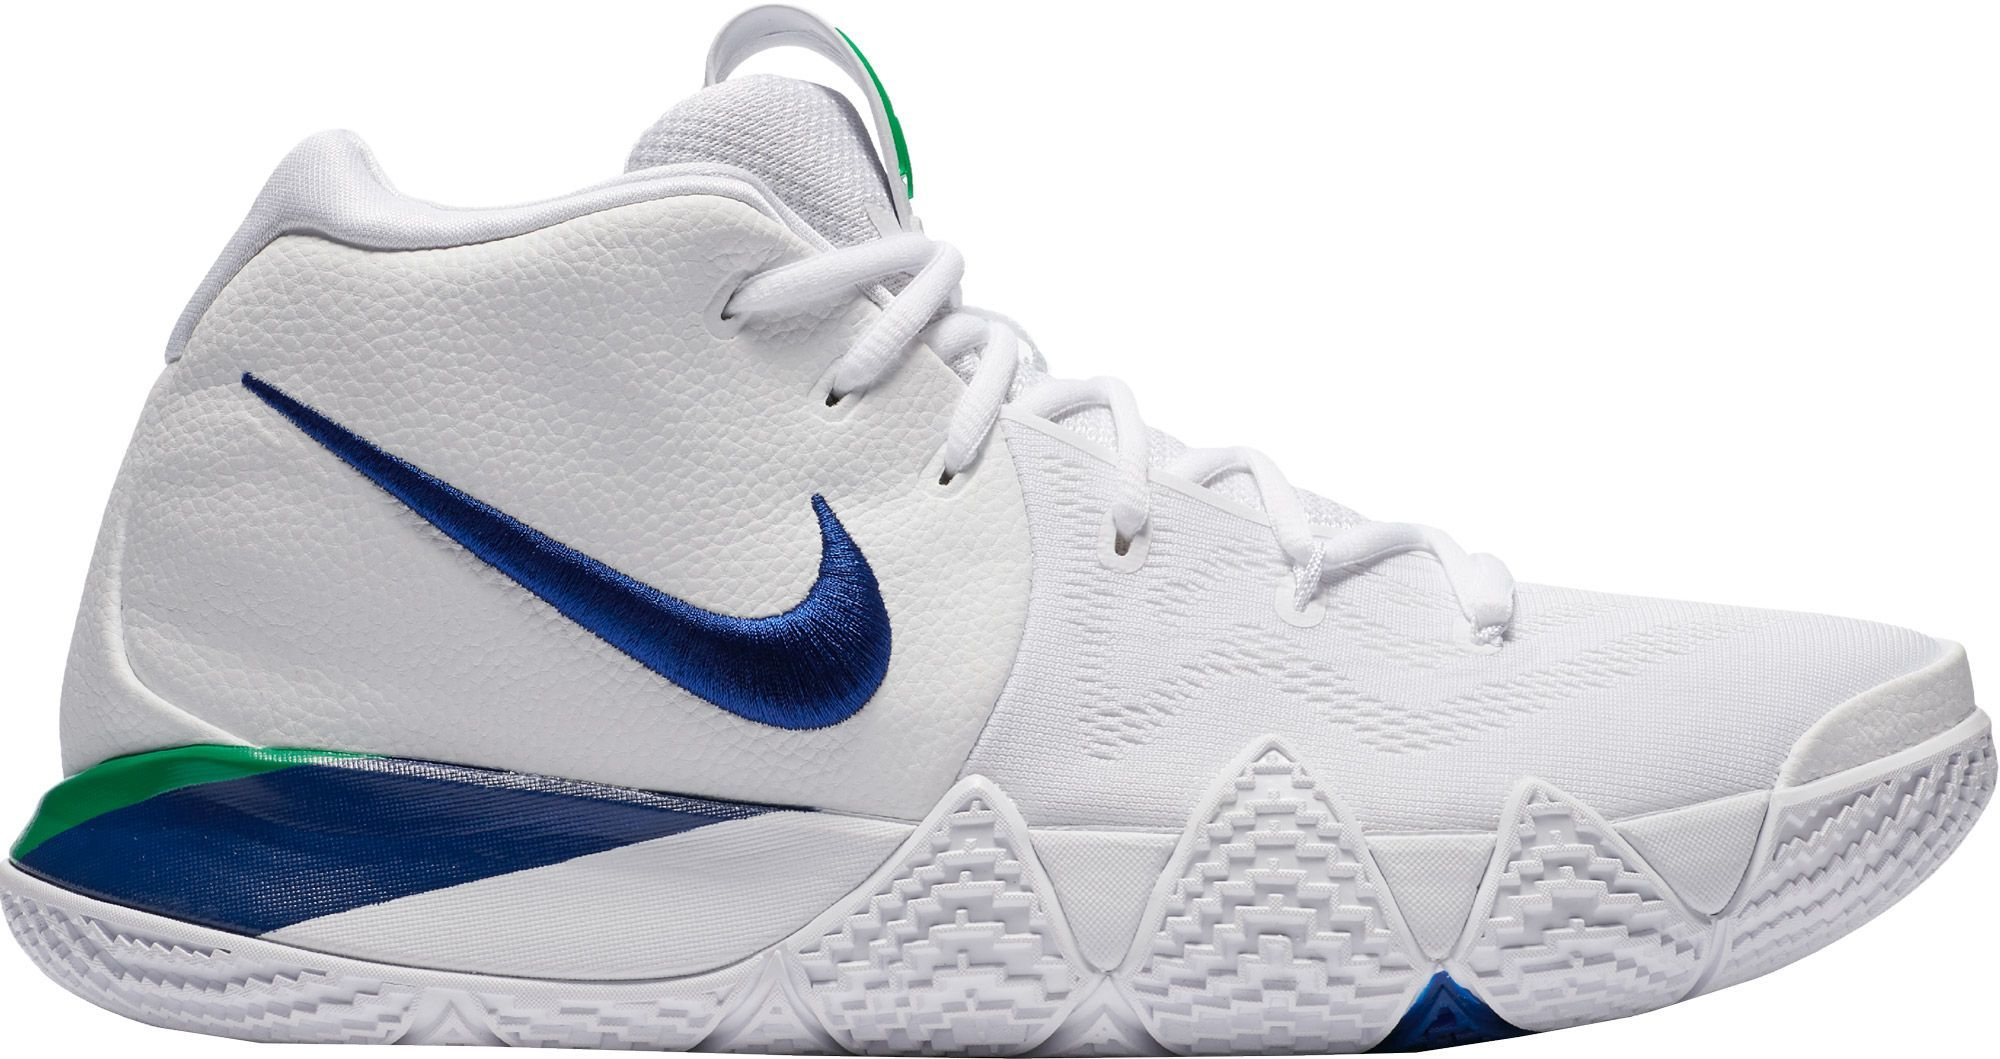 reputable site 90a71 7e765 Nike Kyrie 4 Basketball Shoes | Products | White basketball ...